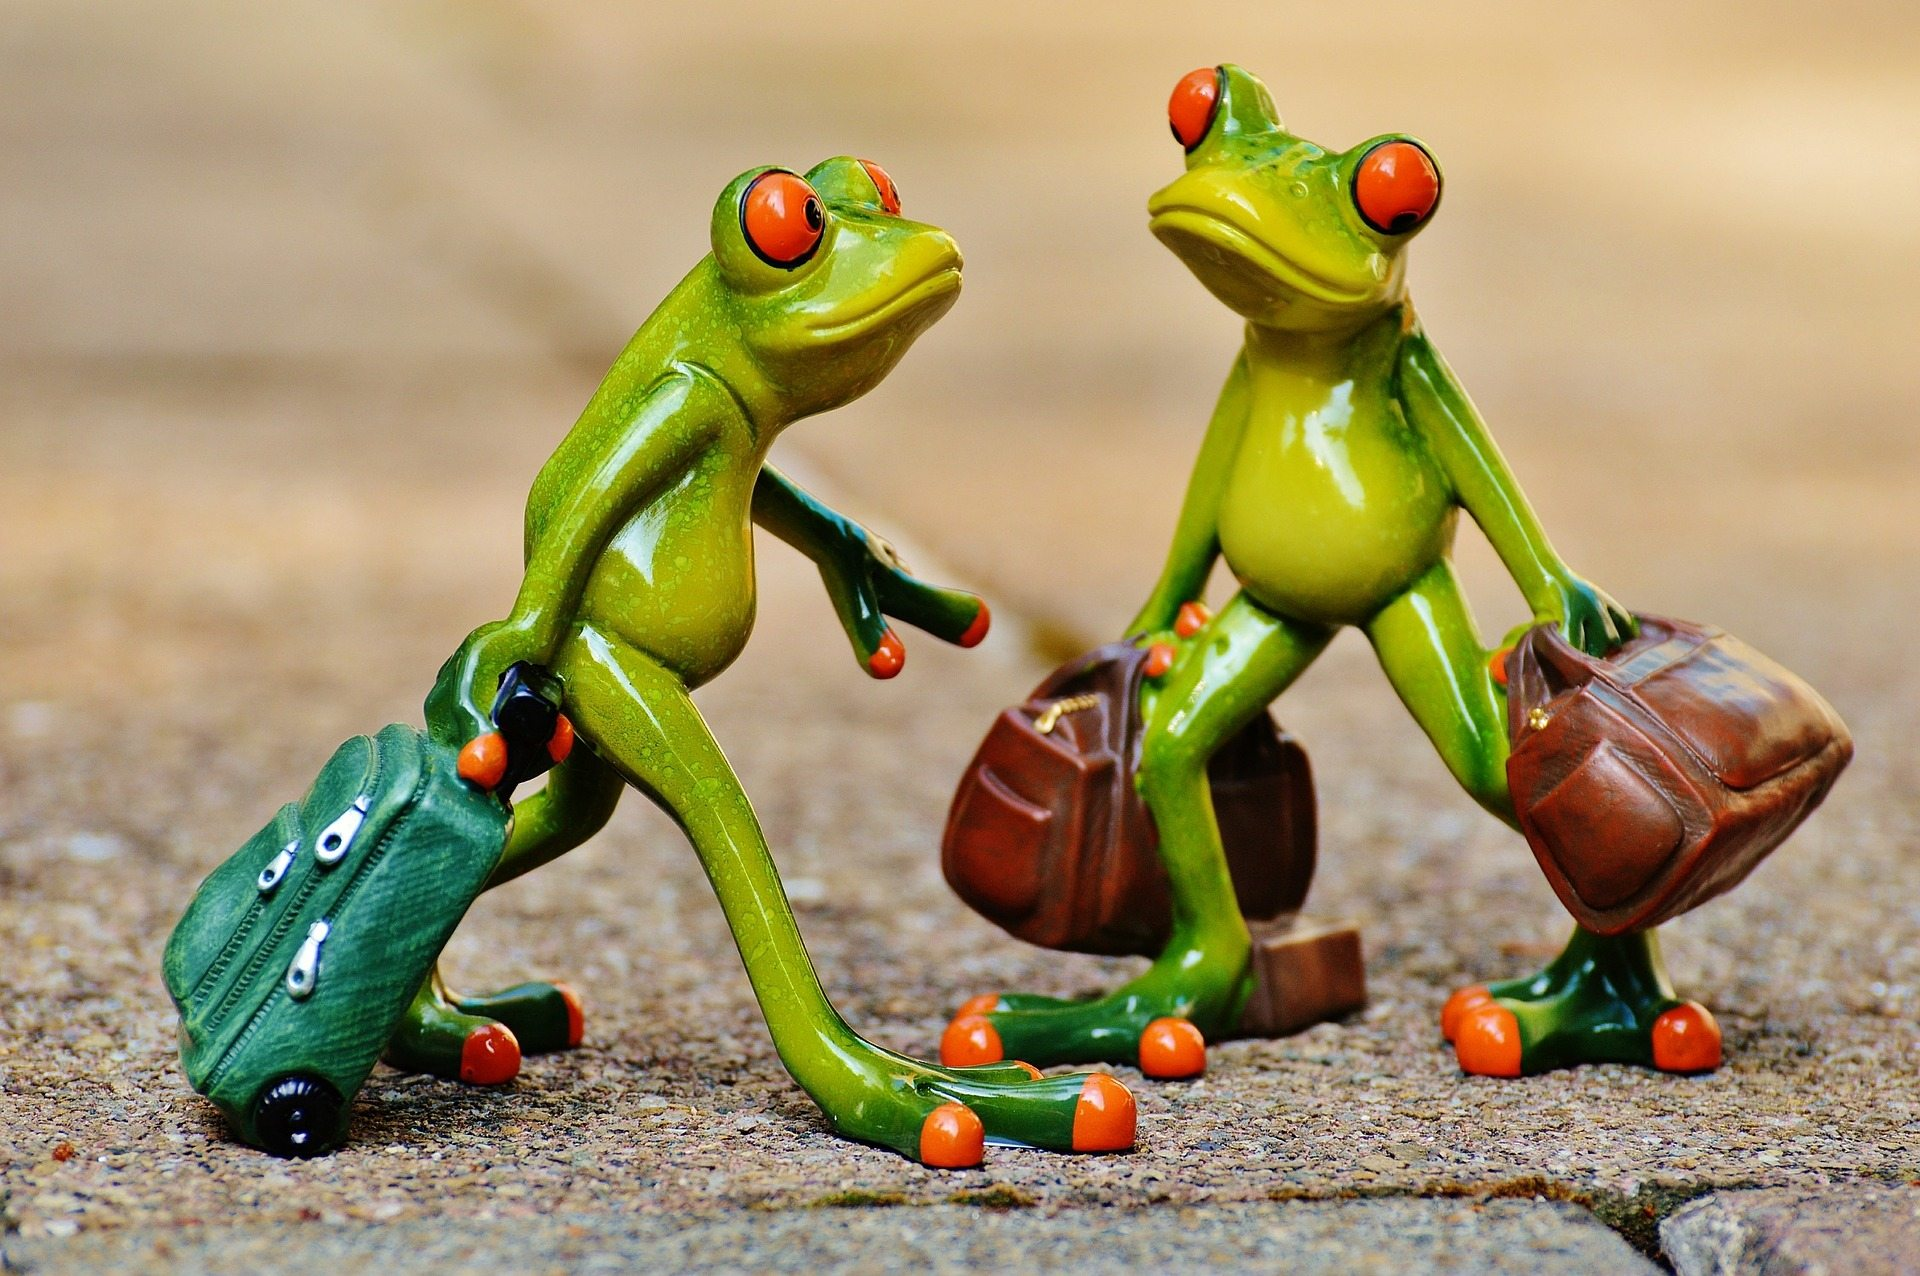 holiday expectations Pixabay frogs-897387_1920